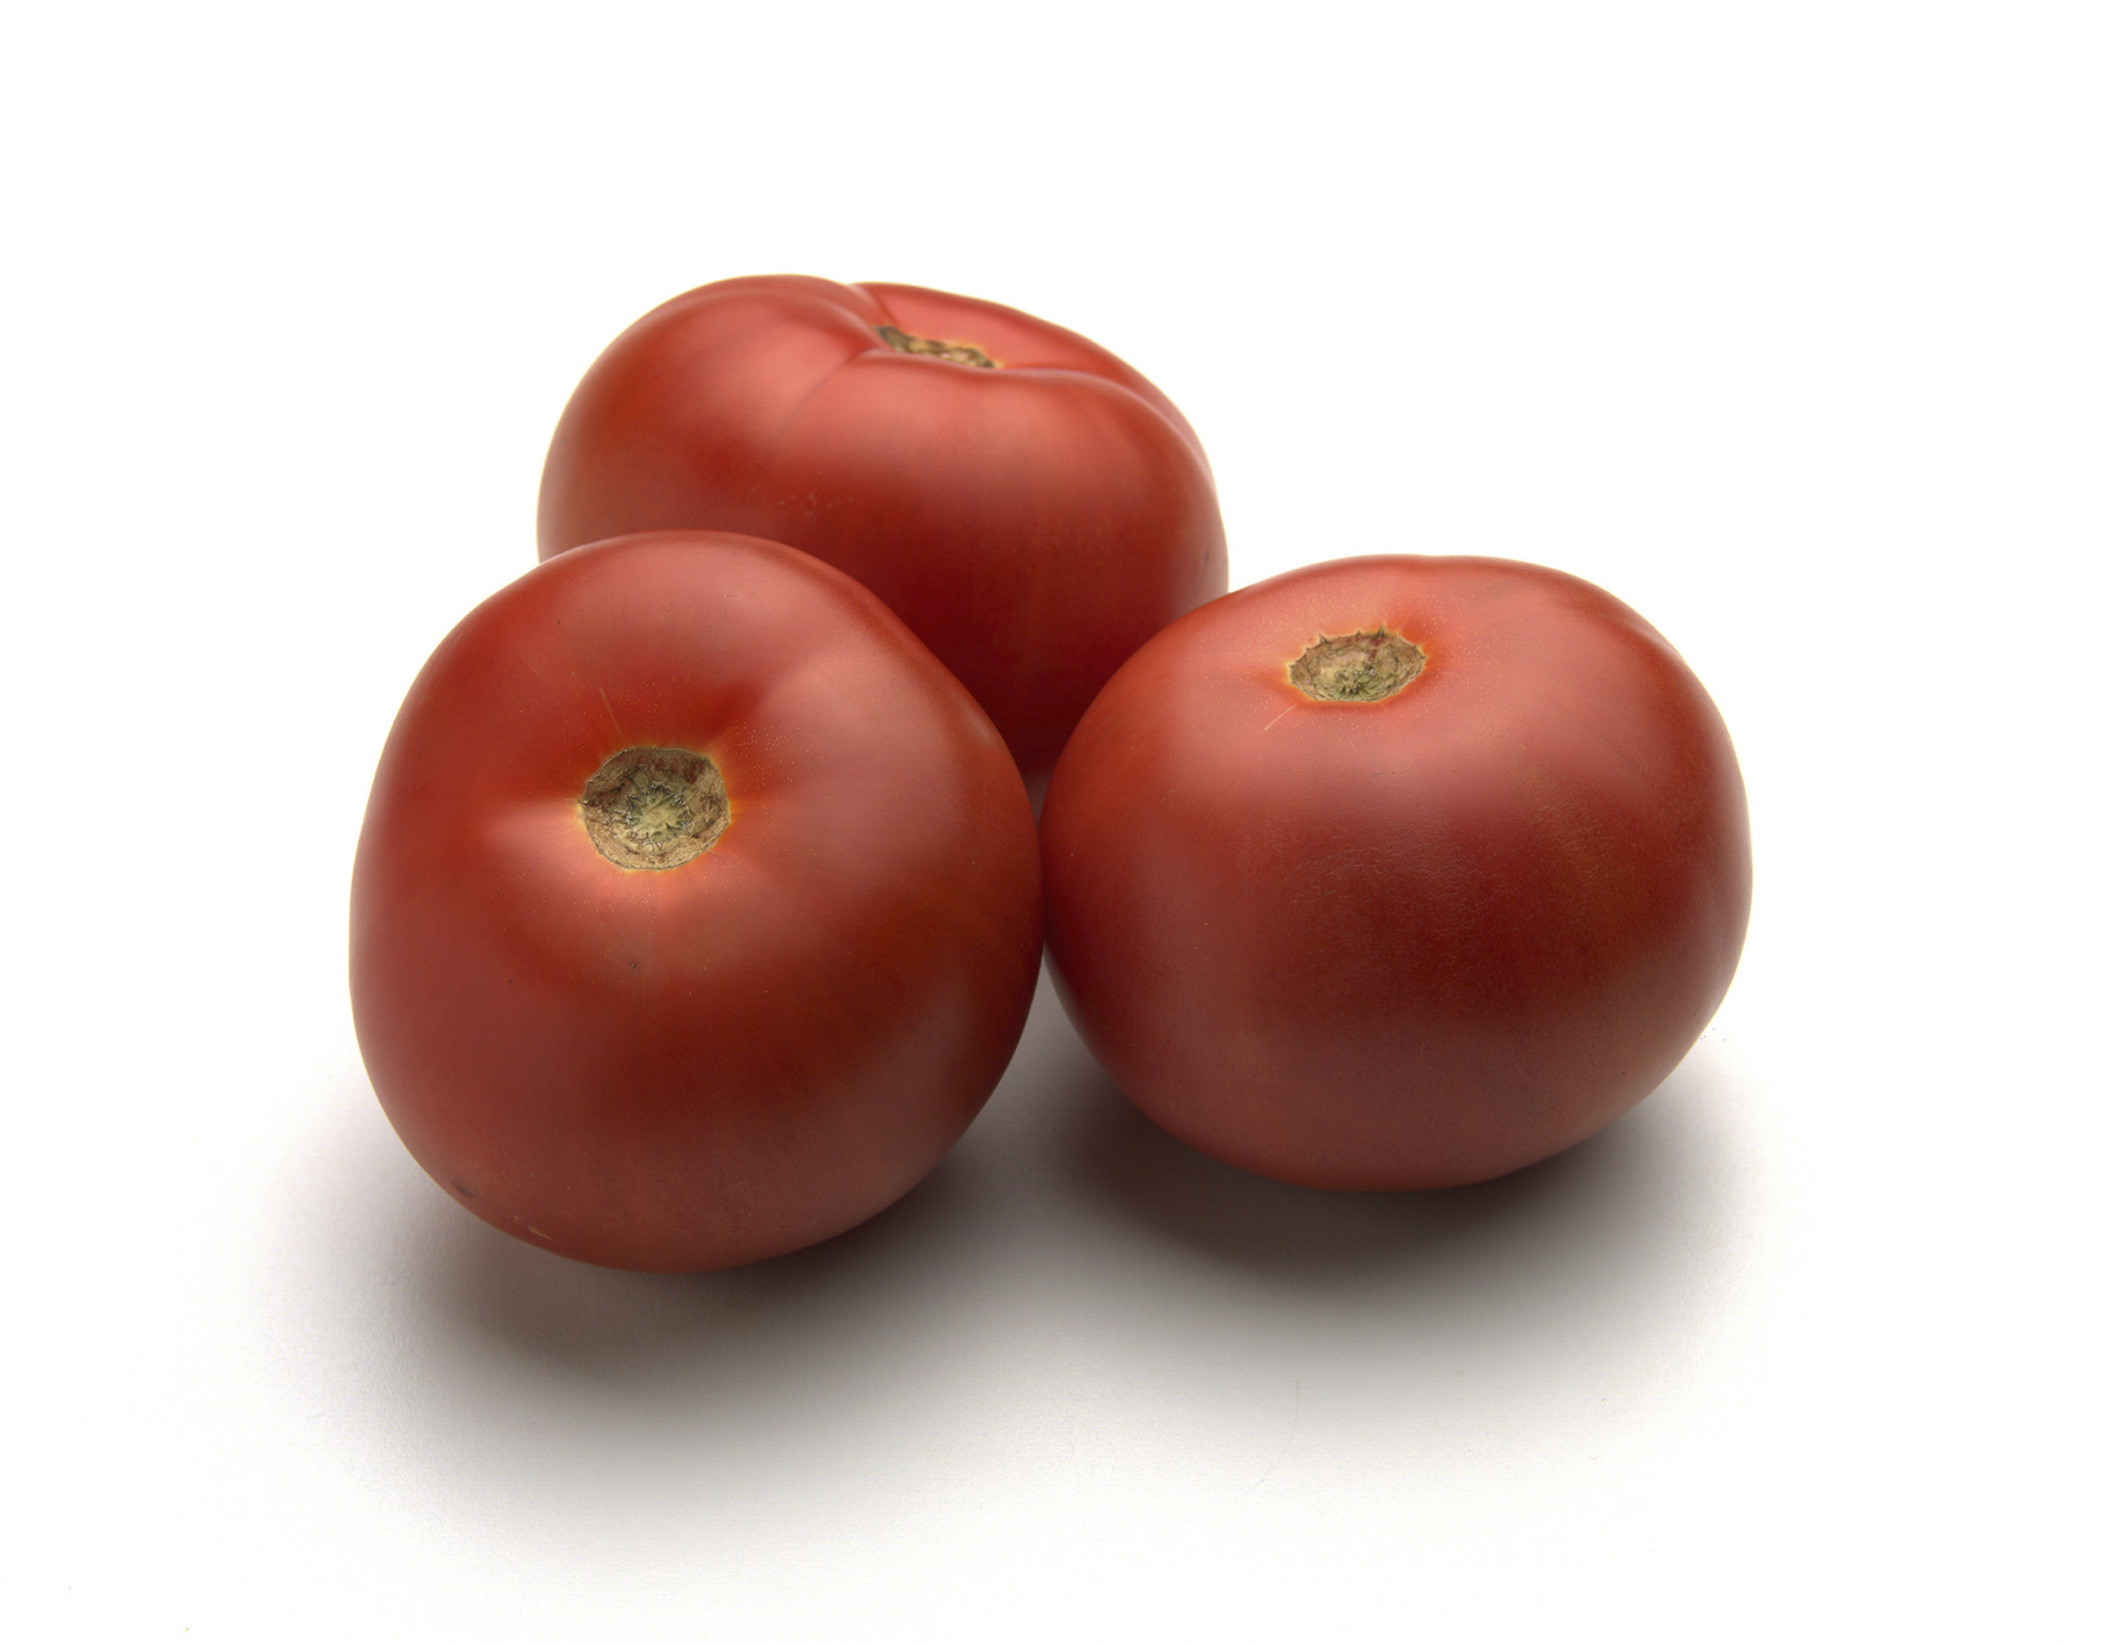 Tomatoes are relatively low in sugar.